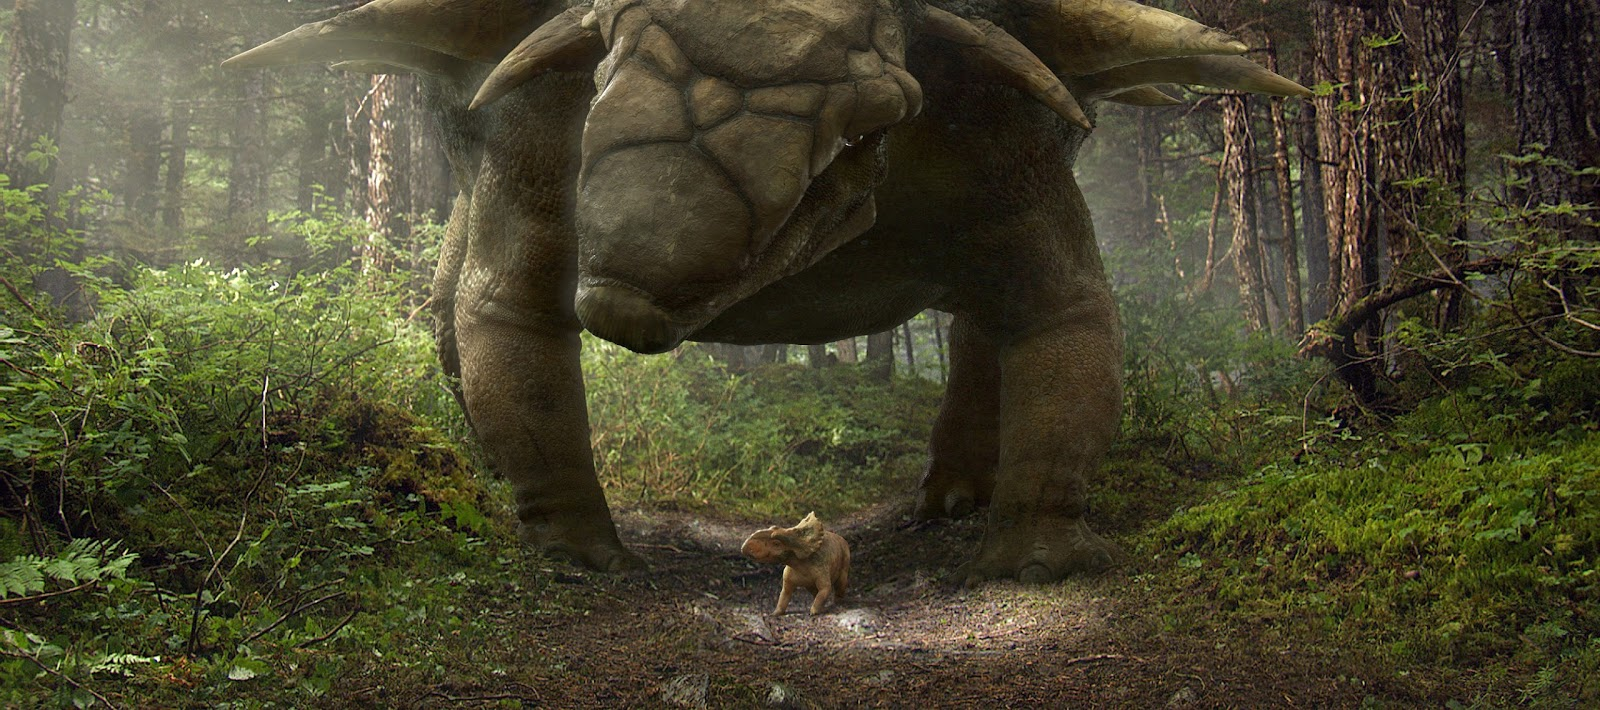 walking with dinosaurs 3d wallpapers - Walking With Dinosaurs 3D Movie Wallpaper #3 SantaBanta